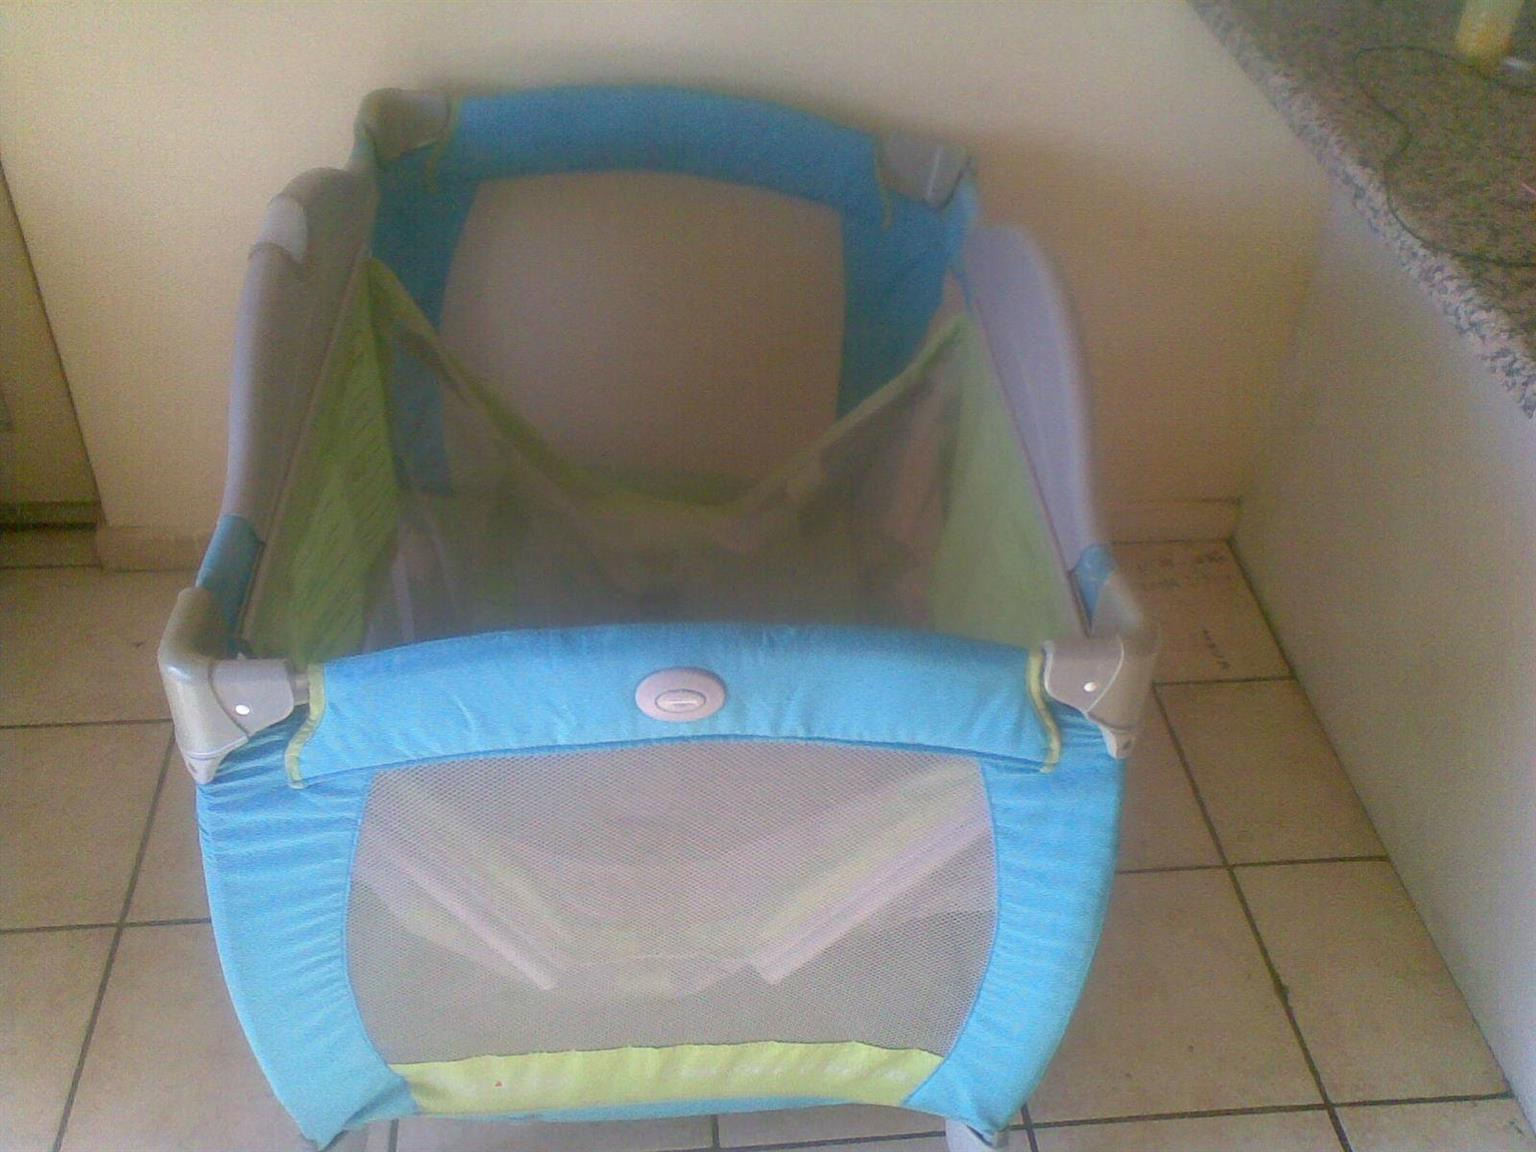 Baby play pen for sale (Super large) Absolute Bargain (1.20 cm length, 80cm wide, 100cm depth) R650-